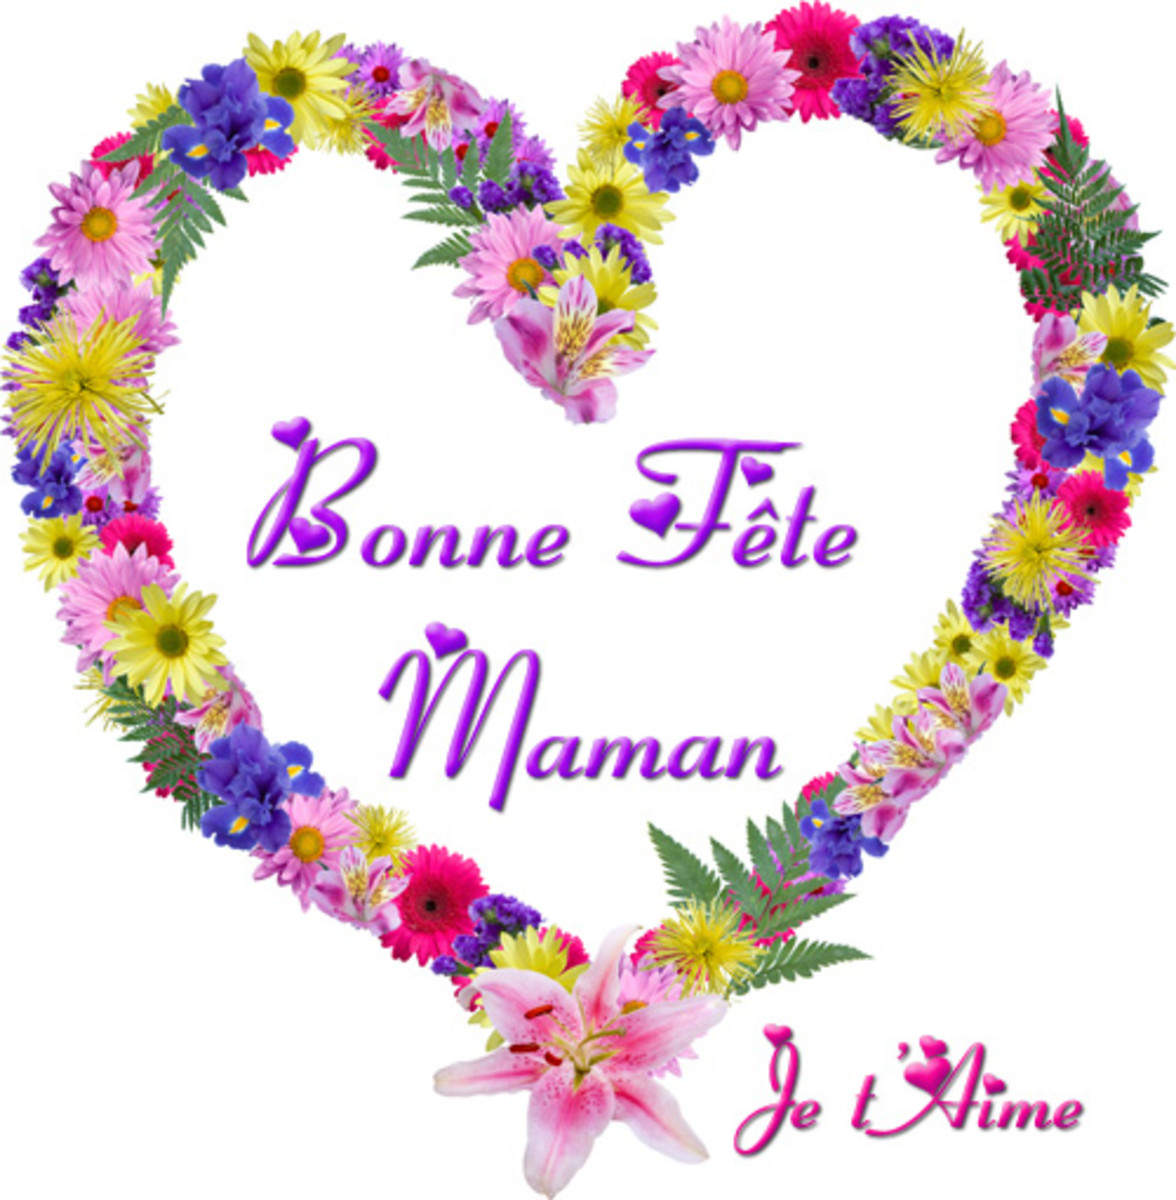 Happy Mothers Day card in French - When is Mothers Day?